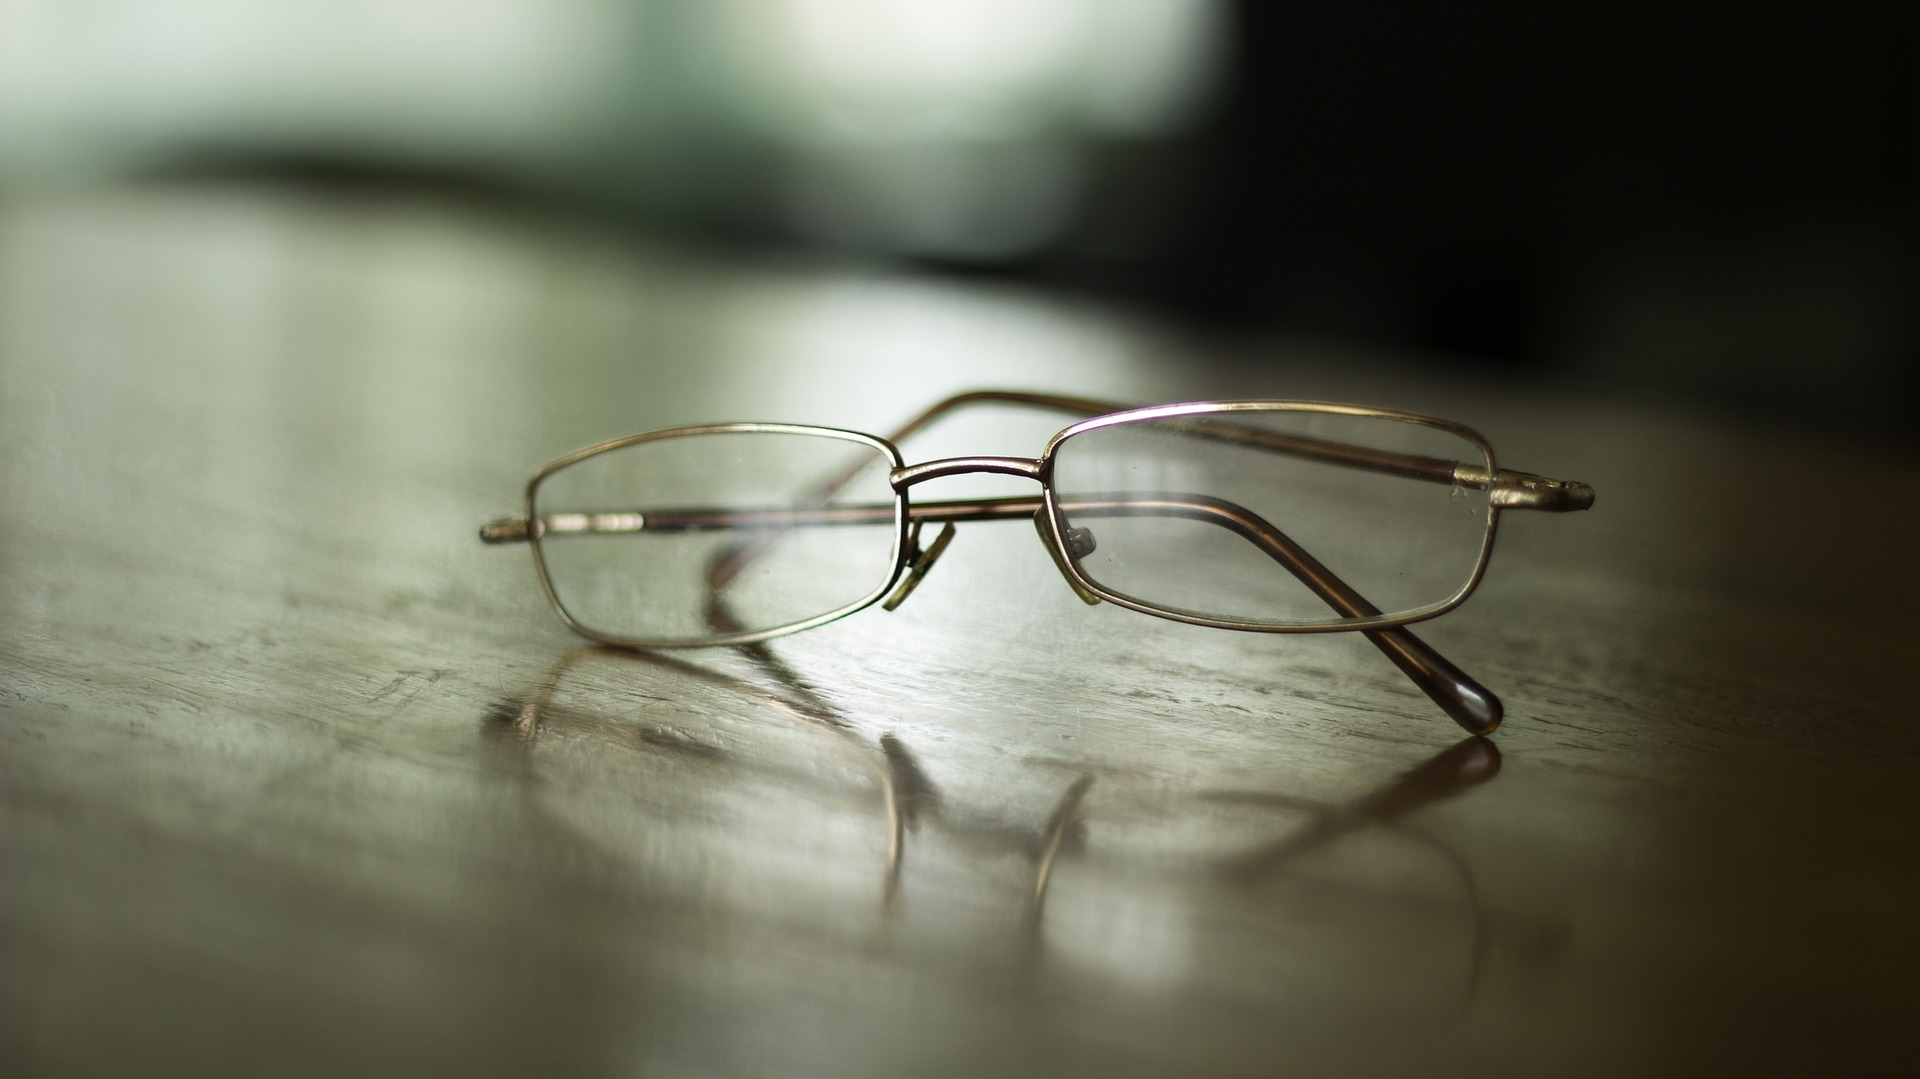 New research shows half the planet will need glasses by 2050